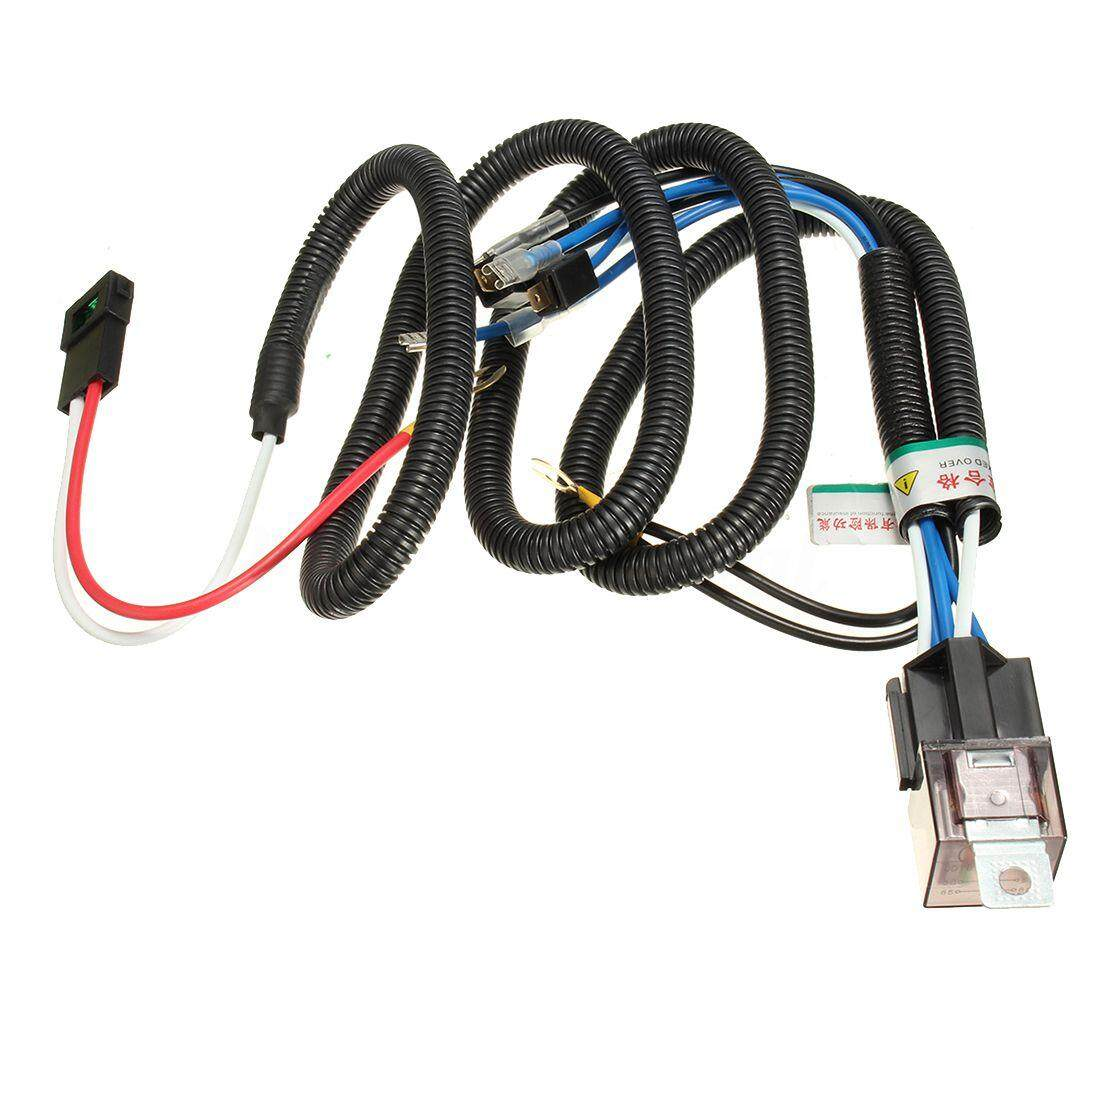 Features Piaa Ho 12 Dual Tone Slender Ultra Light Twin Horns 112db Wiring Harness 12v Truck Car Horn Relay Kit For Grille Mount Blast